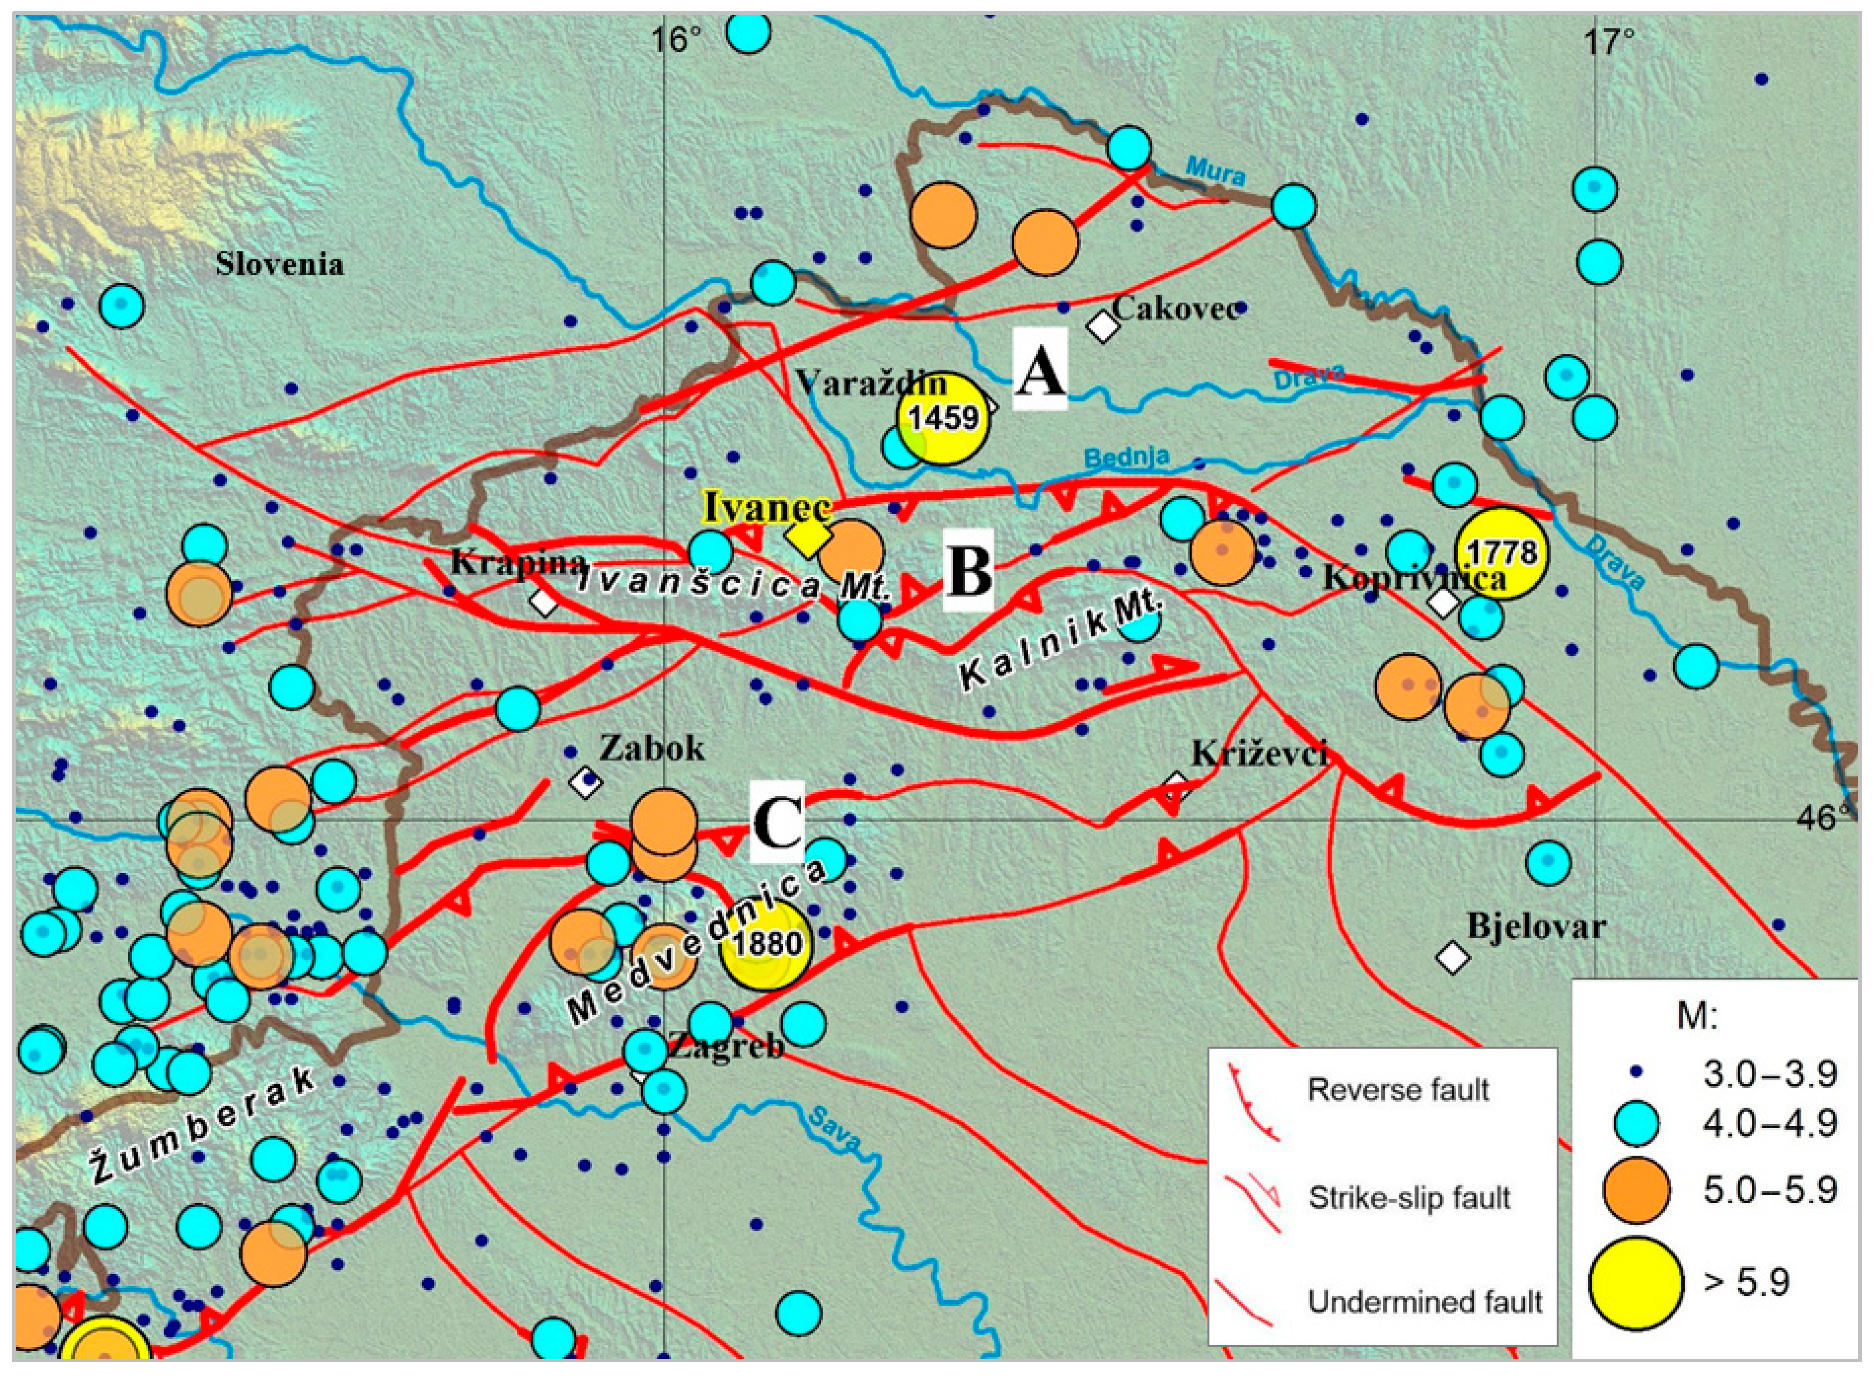 Geosciences Free Full Text Assessment Of The Seismic Site Amplification In The City Of Ivanec Nw Part Of Croatia Using The Microtremor Hvsr Method And Equivalent Linear Site Response Analysis Html